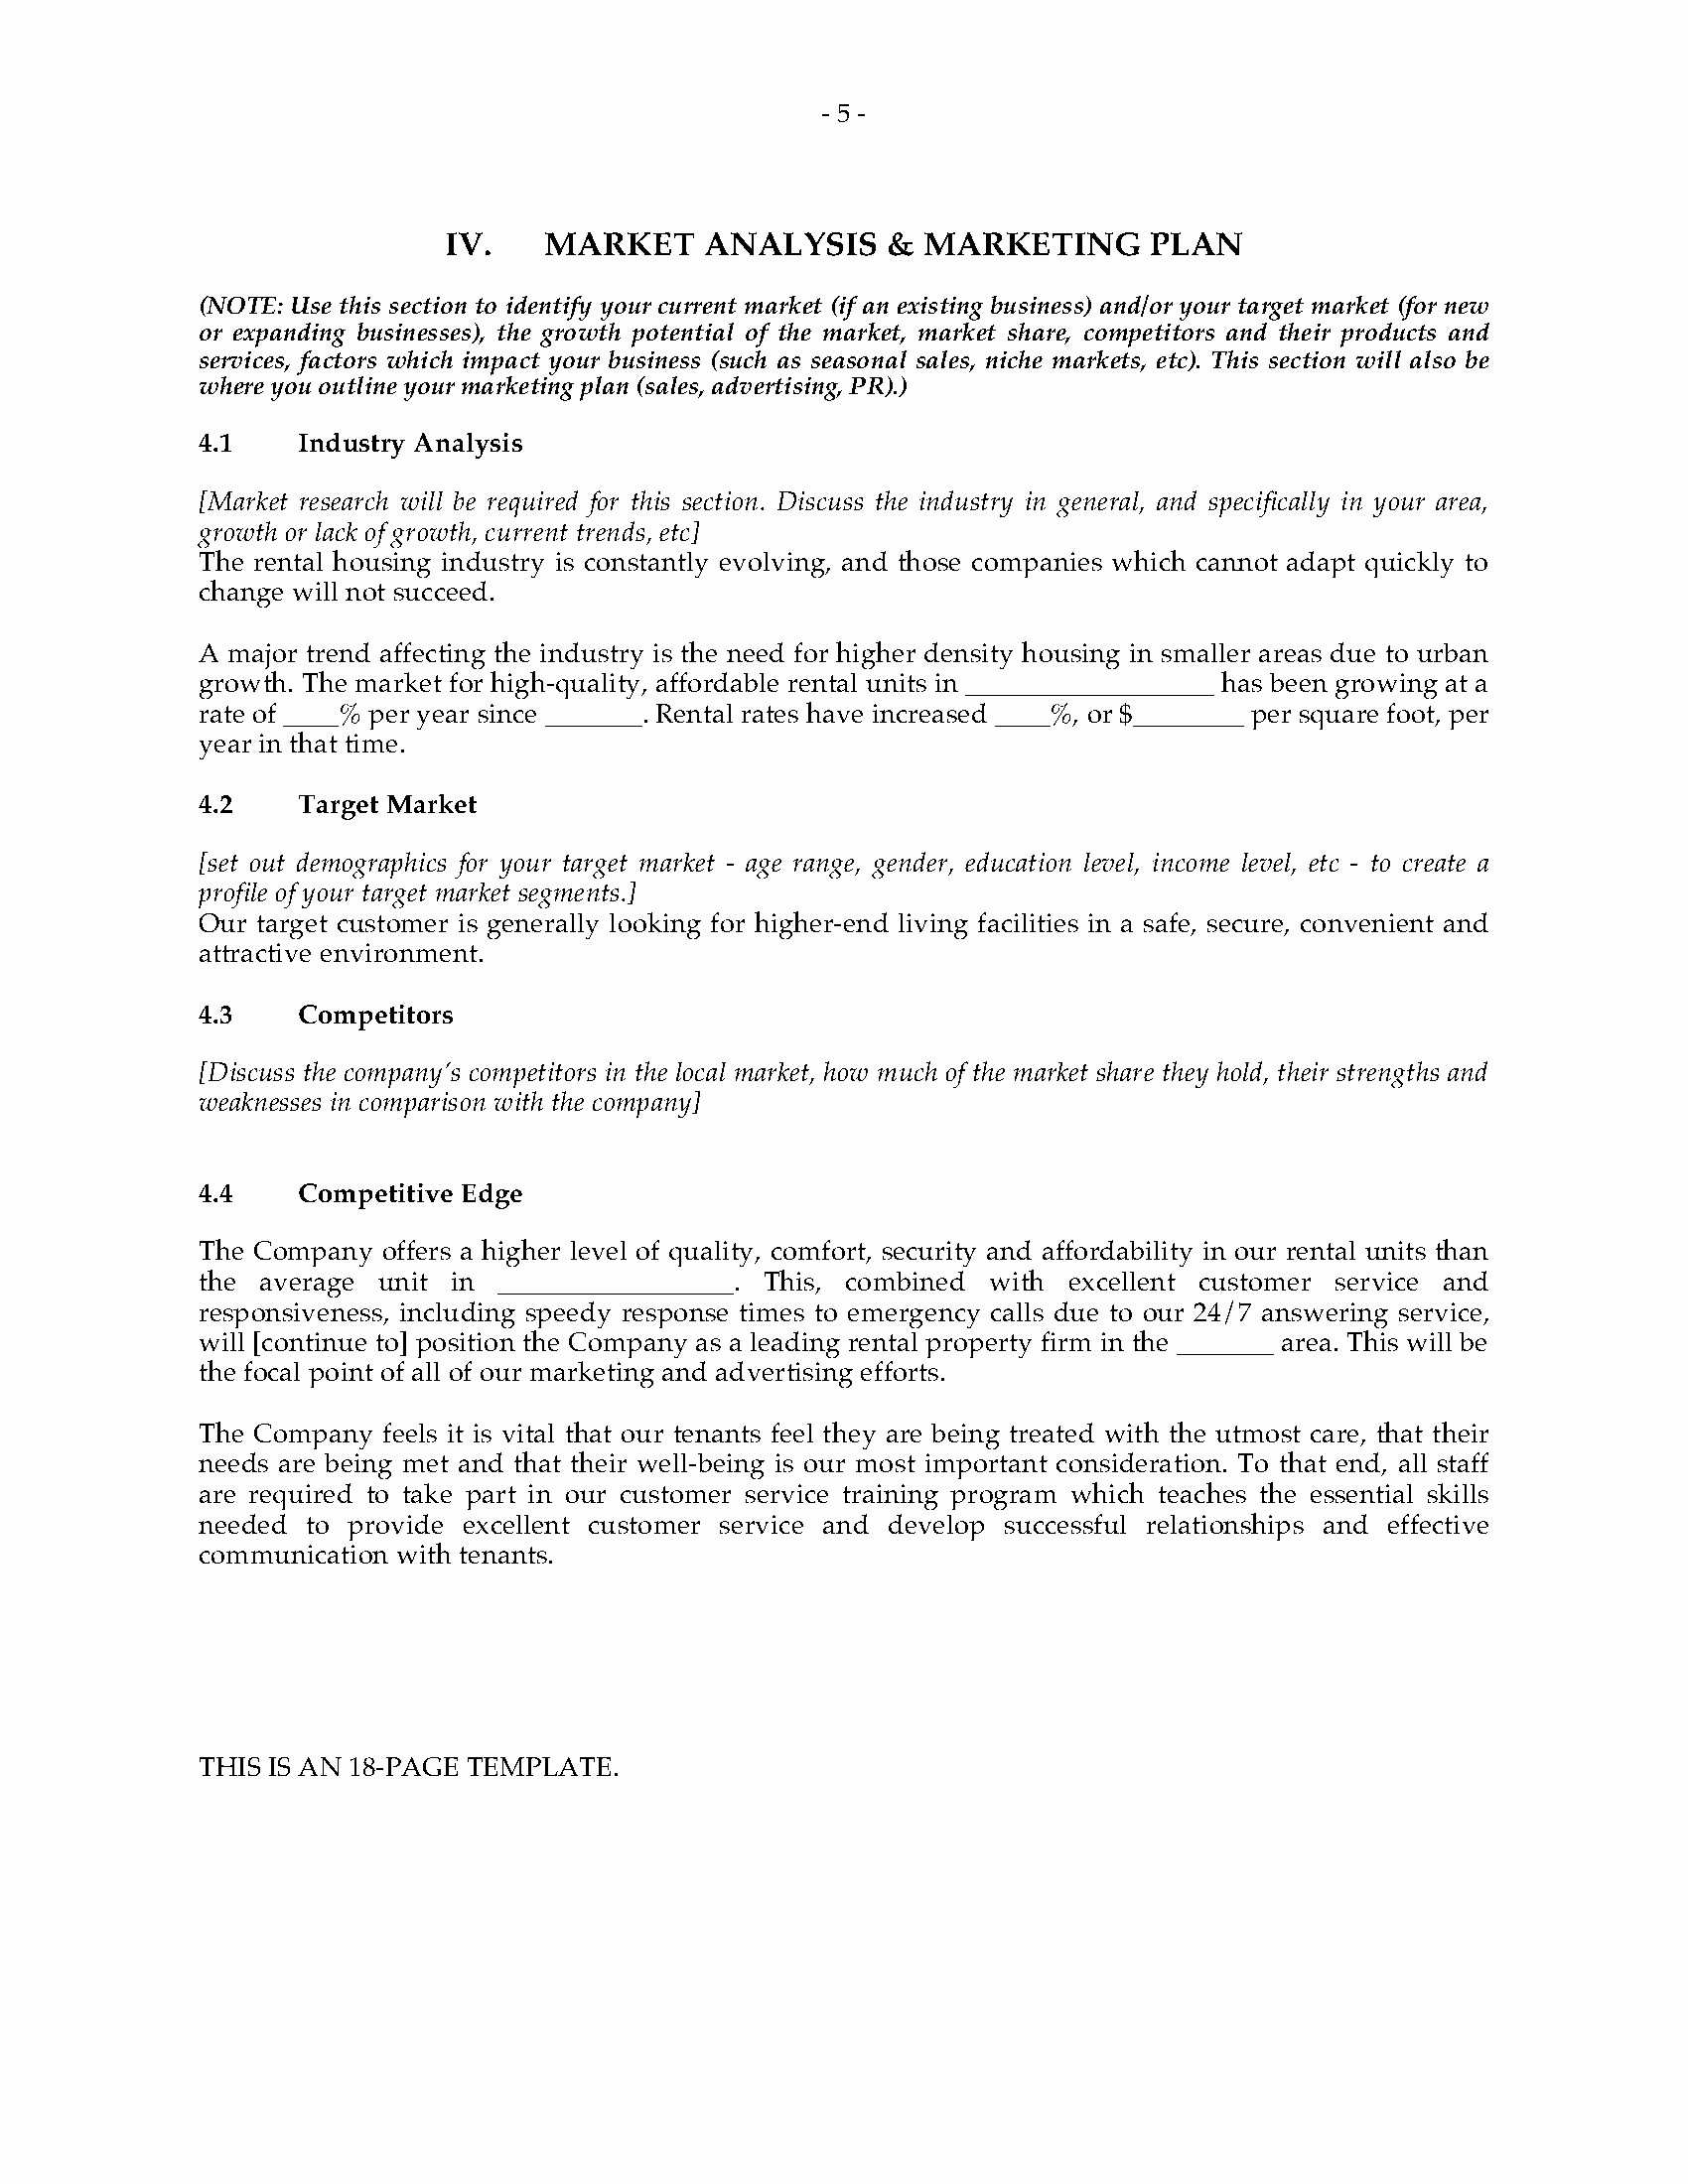 Real Estate Executive Summary Template Inspirational Property Management Pany Business Plan